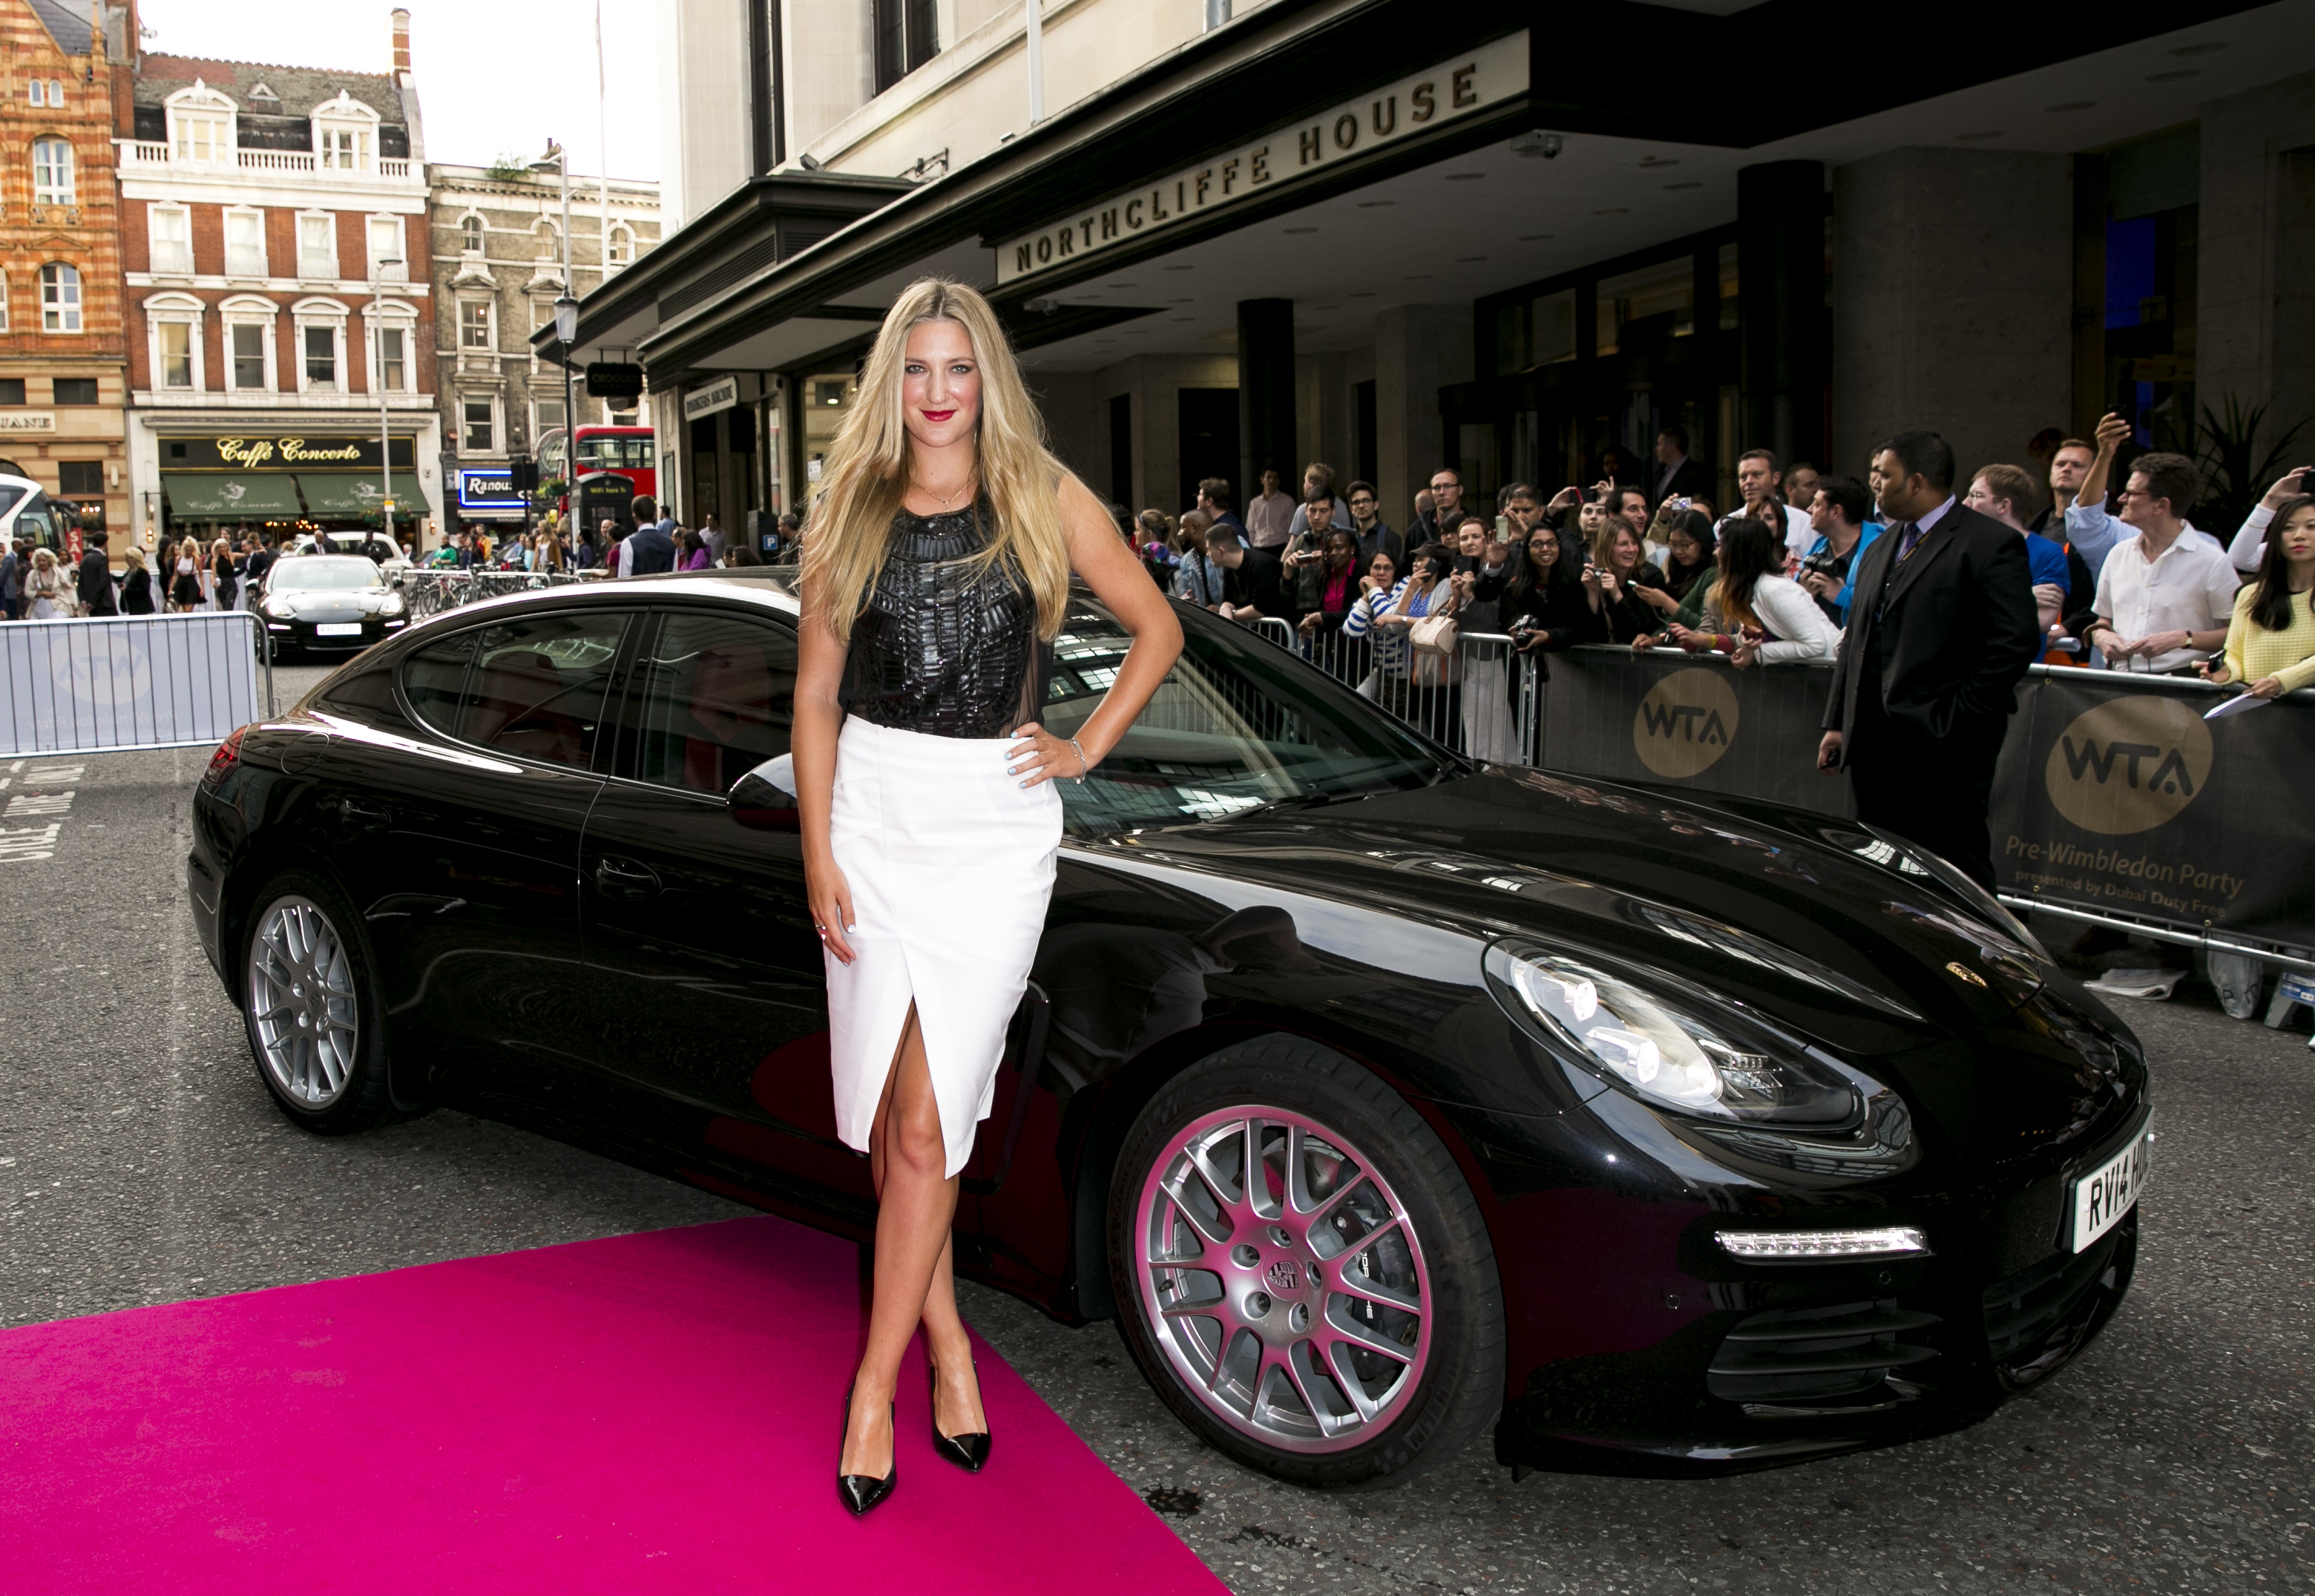 Maria Sharapova Driven To Pre Wimbledon Party In A Porsche